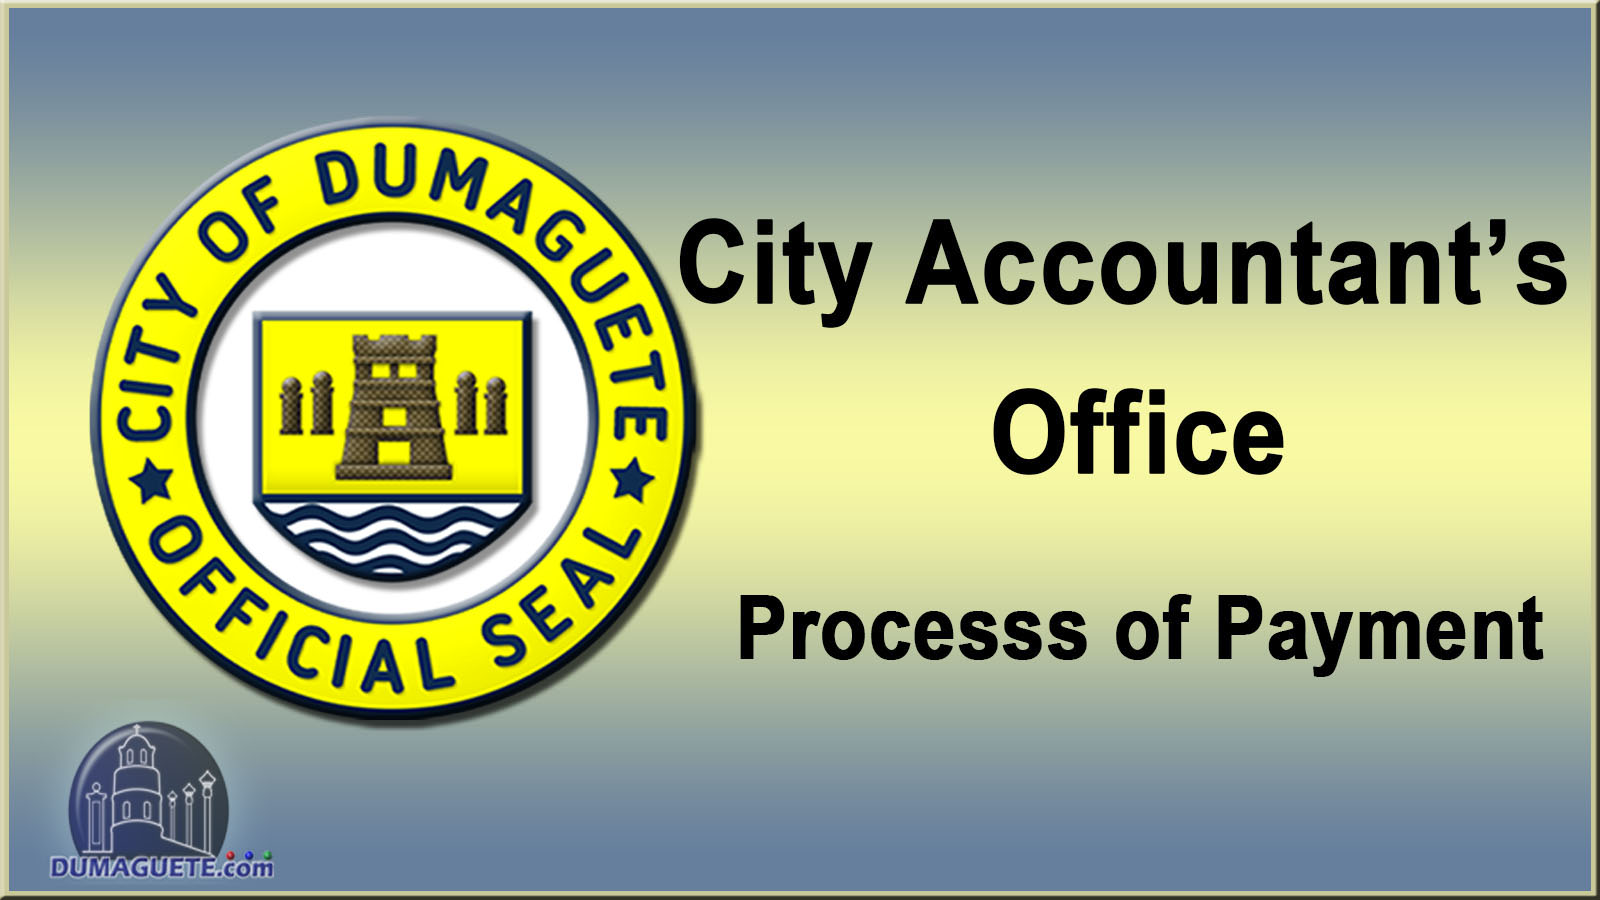 Dumaguete City Accountant's Office